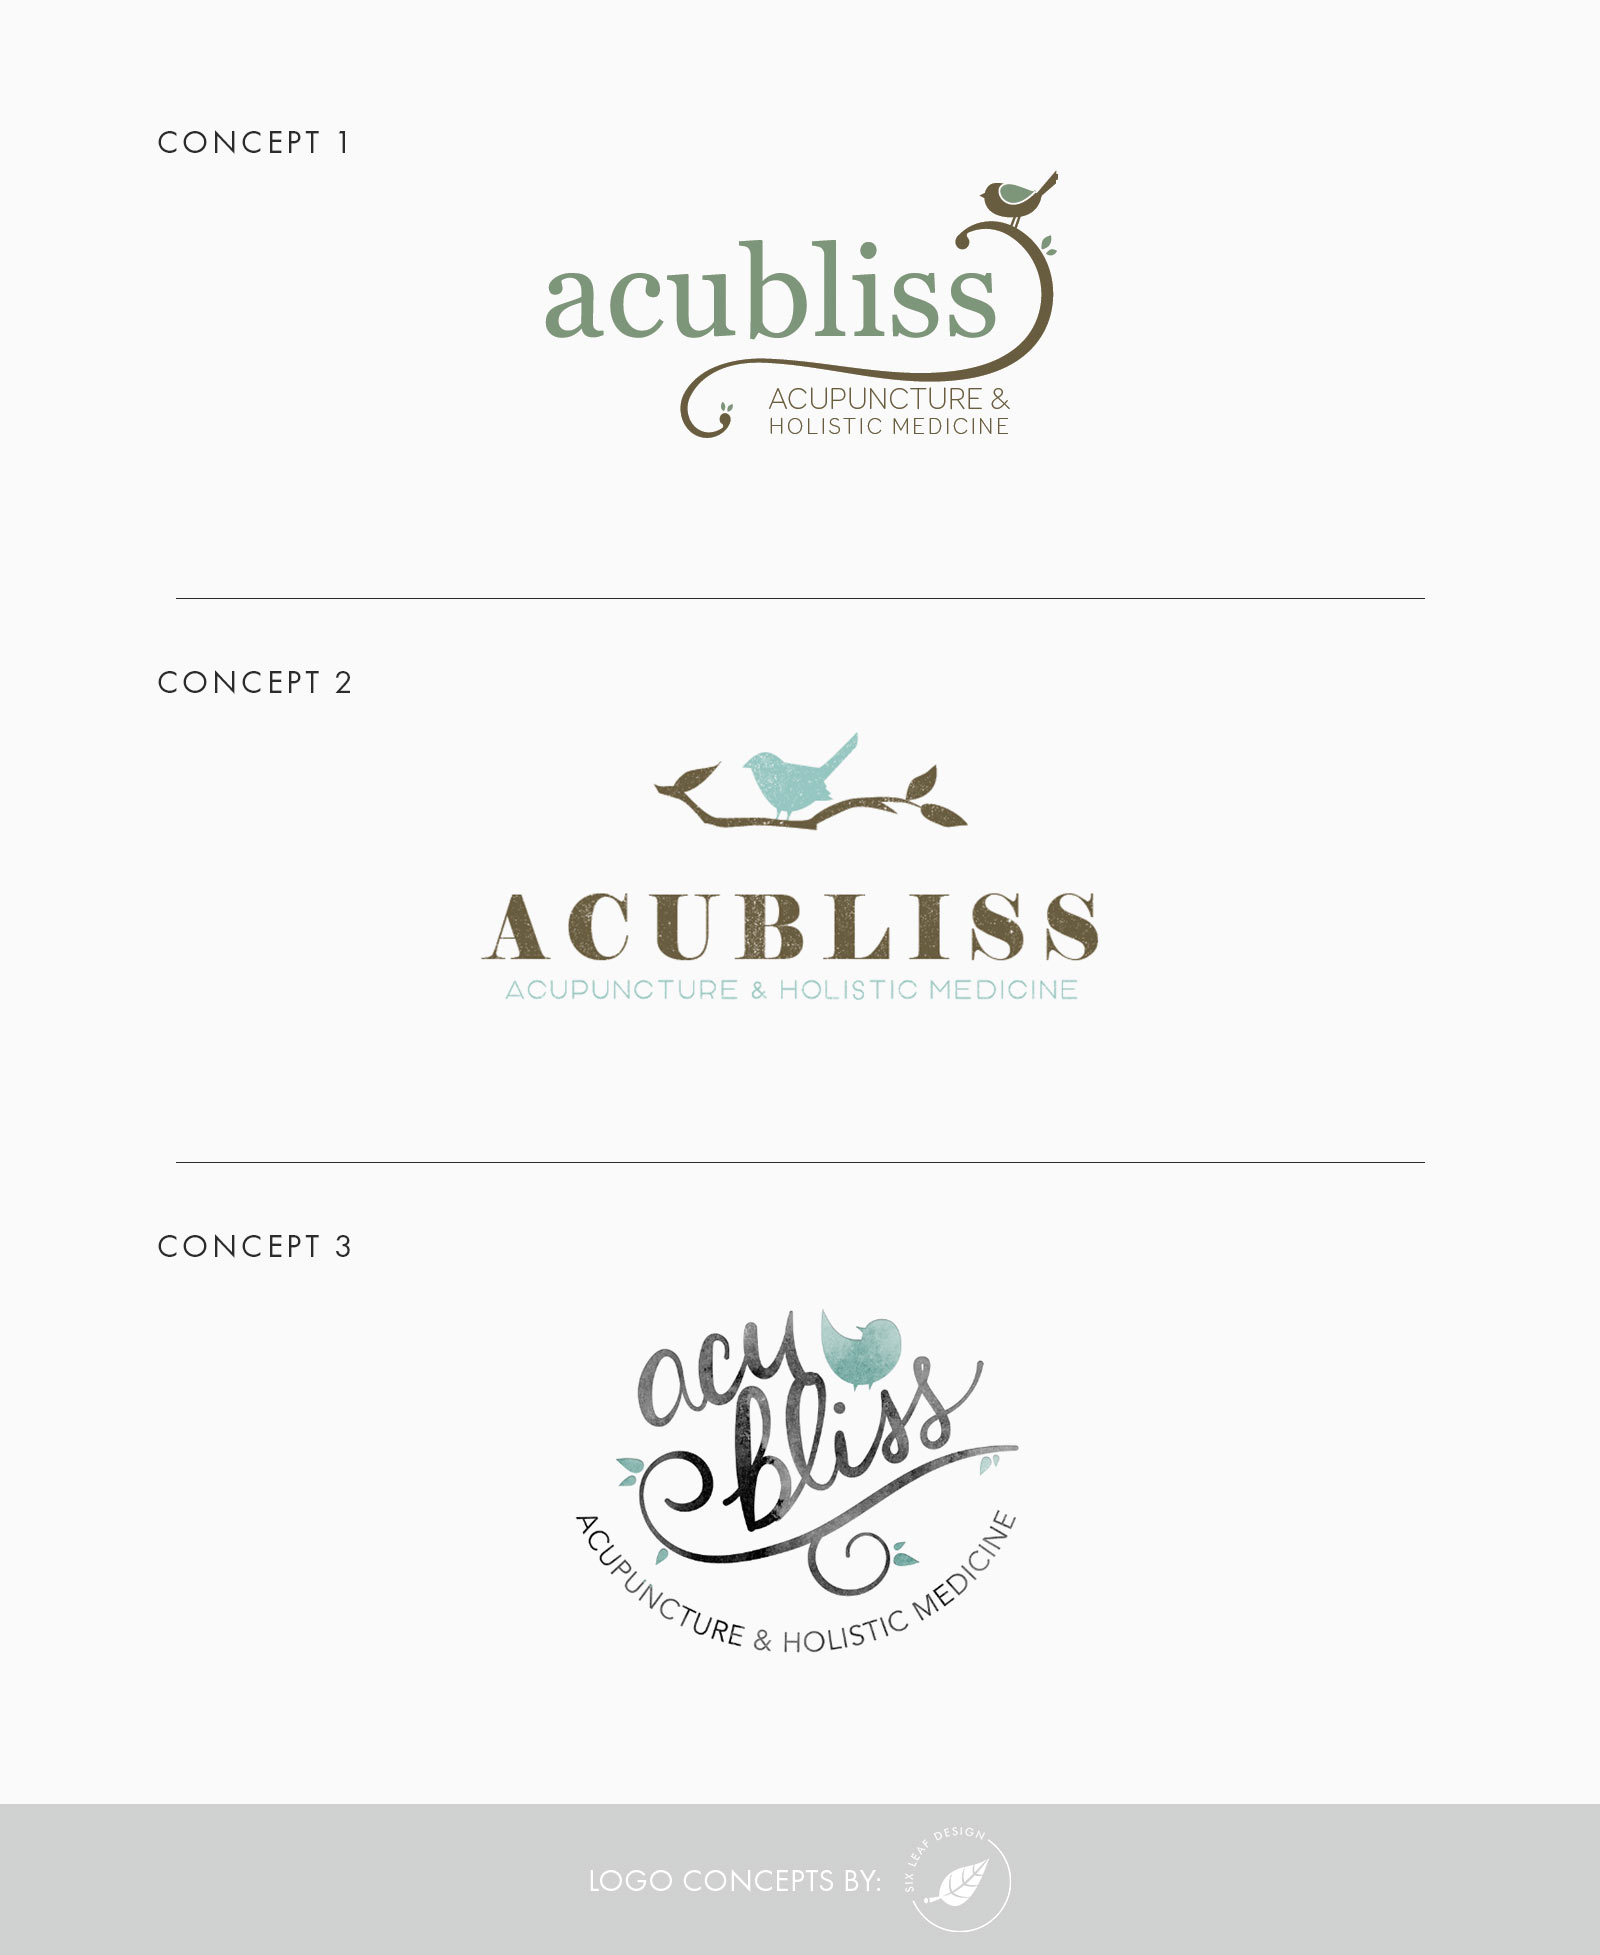 Logo Design Concepts for Acupunture Business Featuring Bird & Branch, Teal + Brown, Hand-Lettering